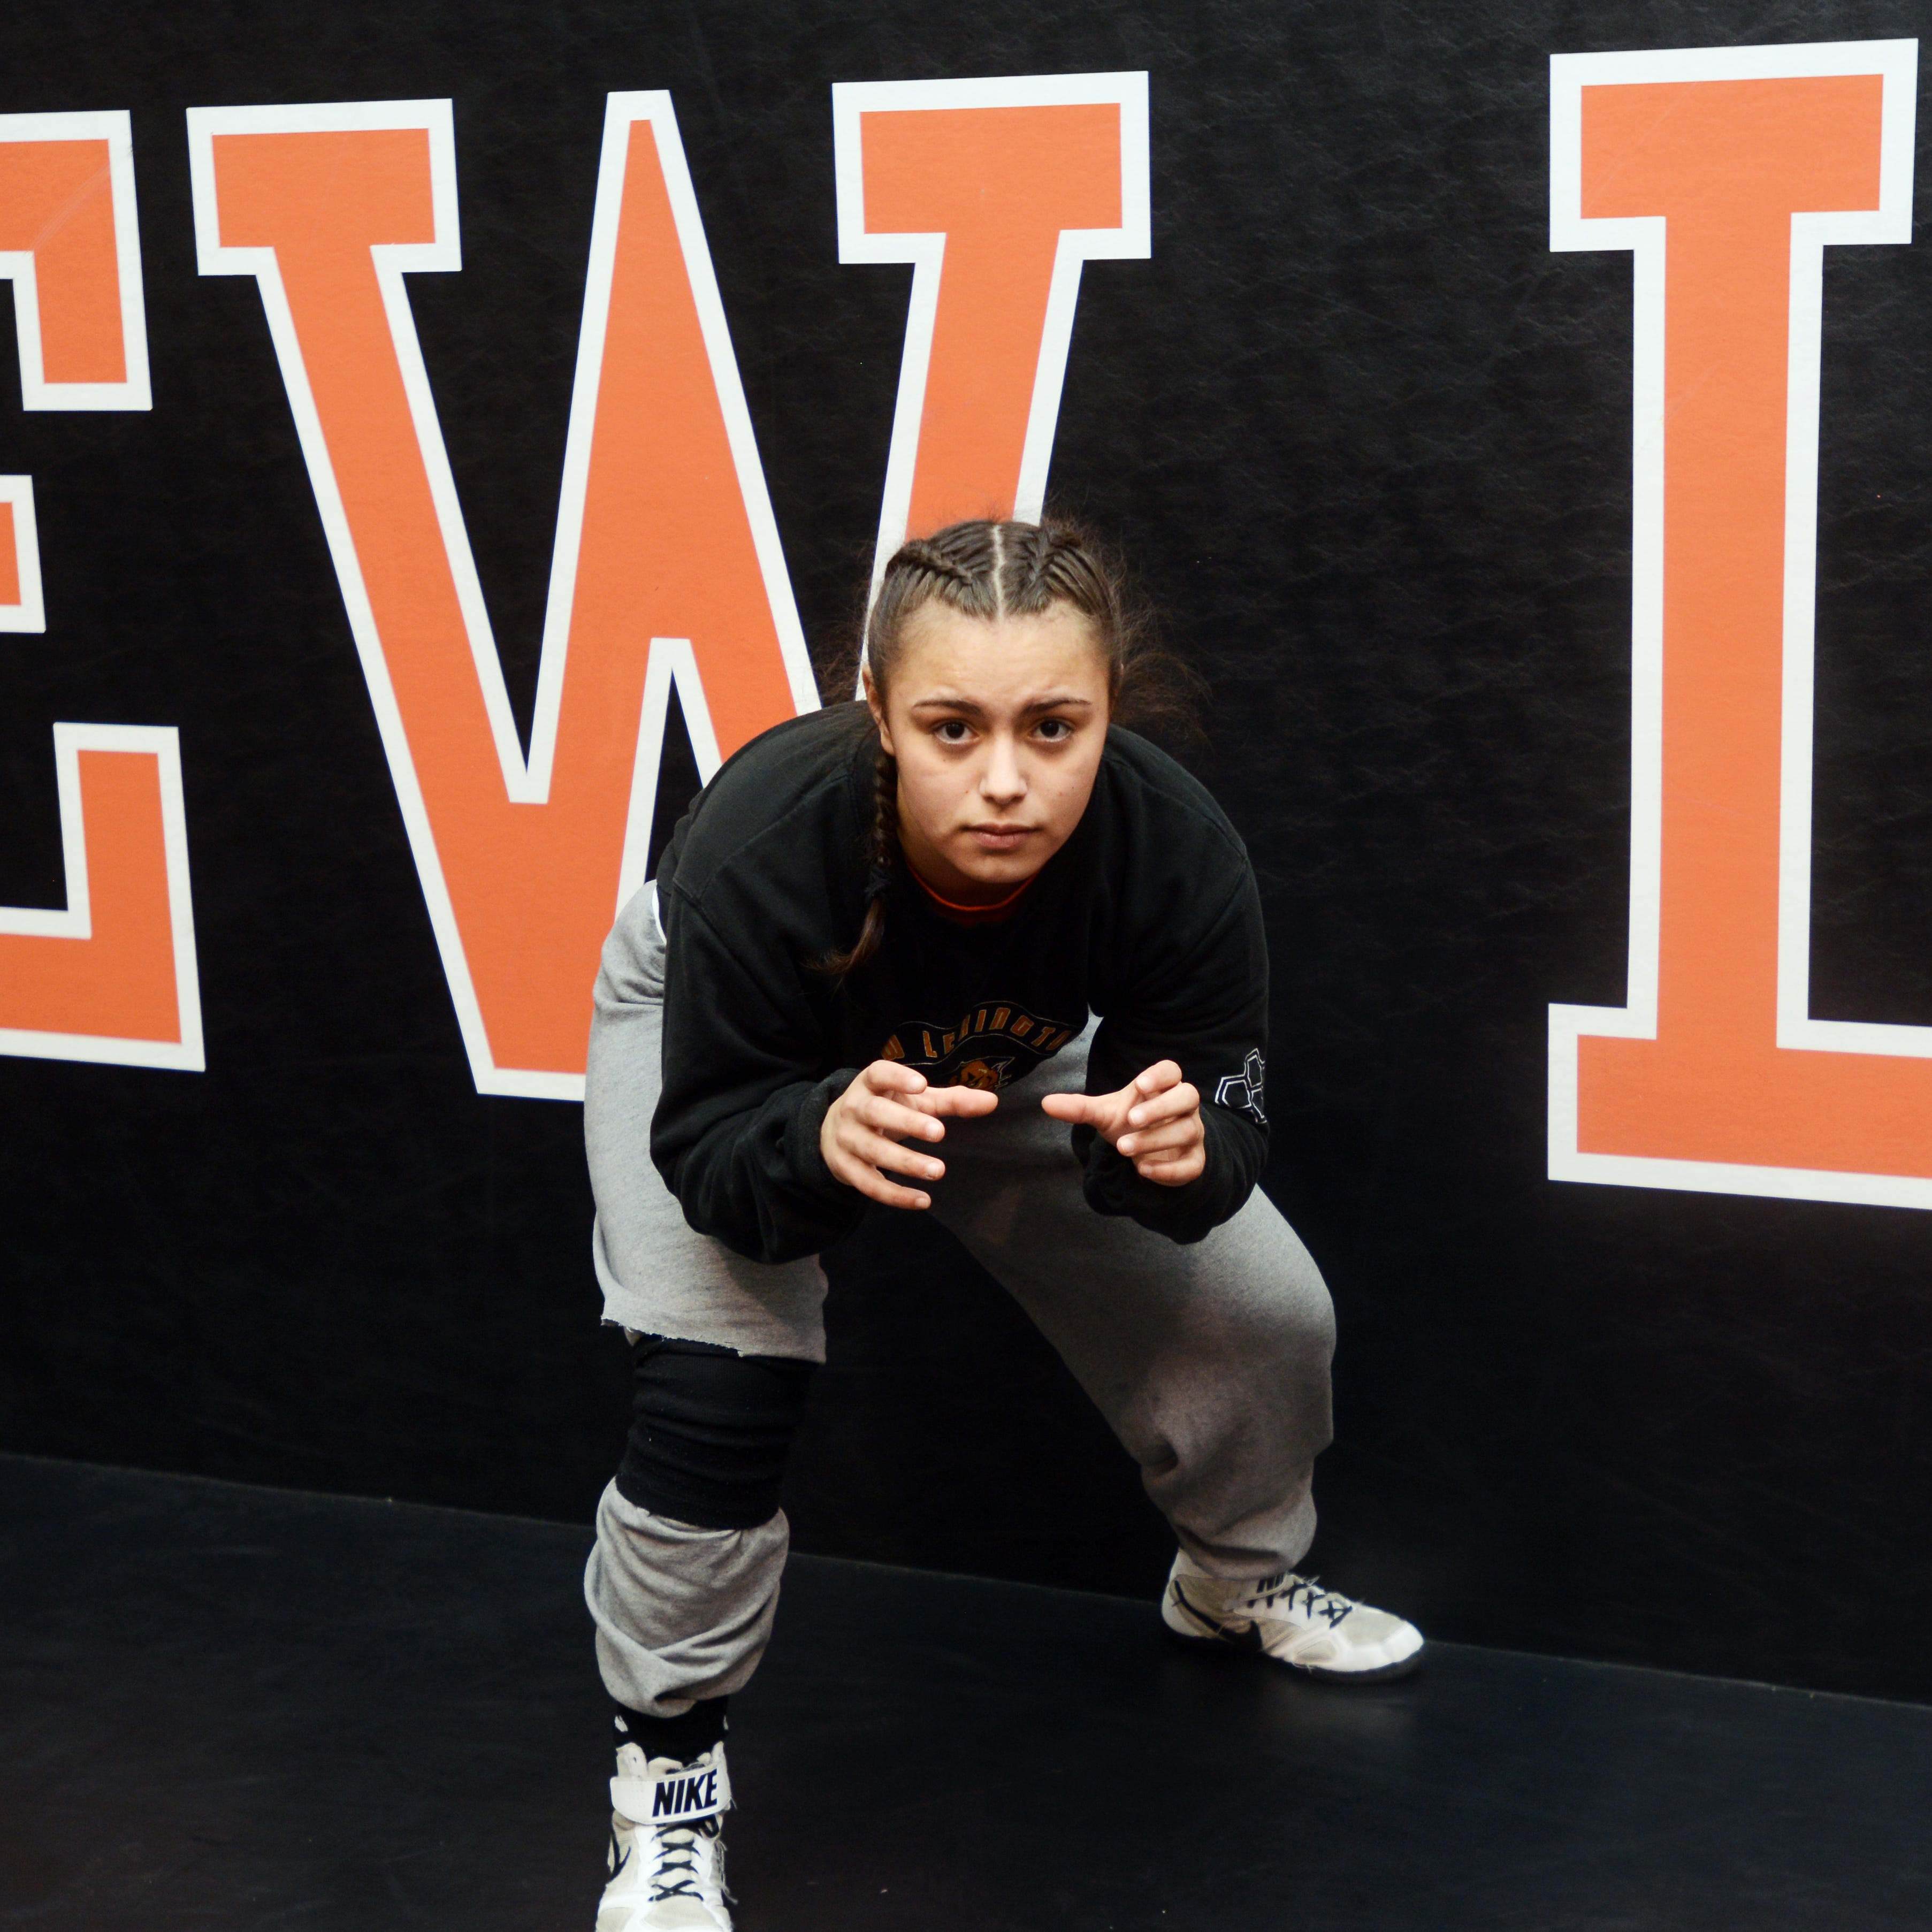 Nationally ranked female wrestler is eyeing success on a larger stage